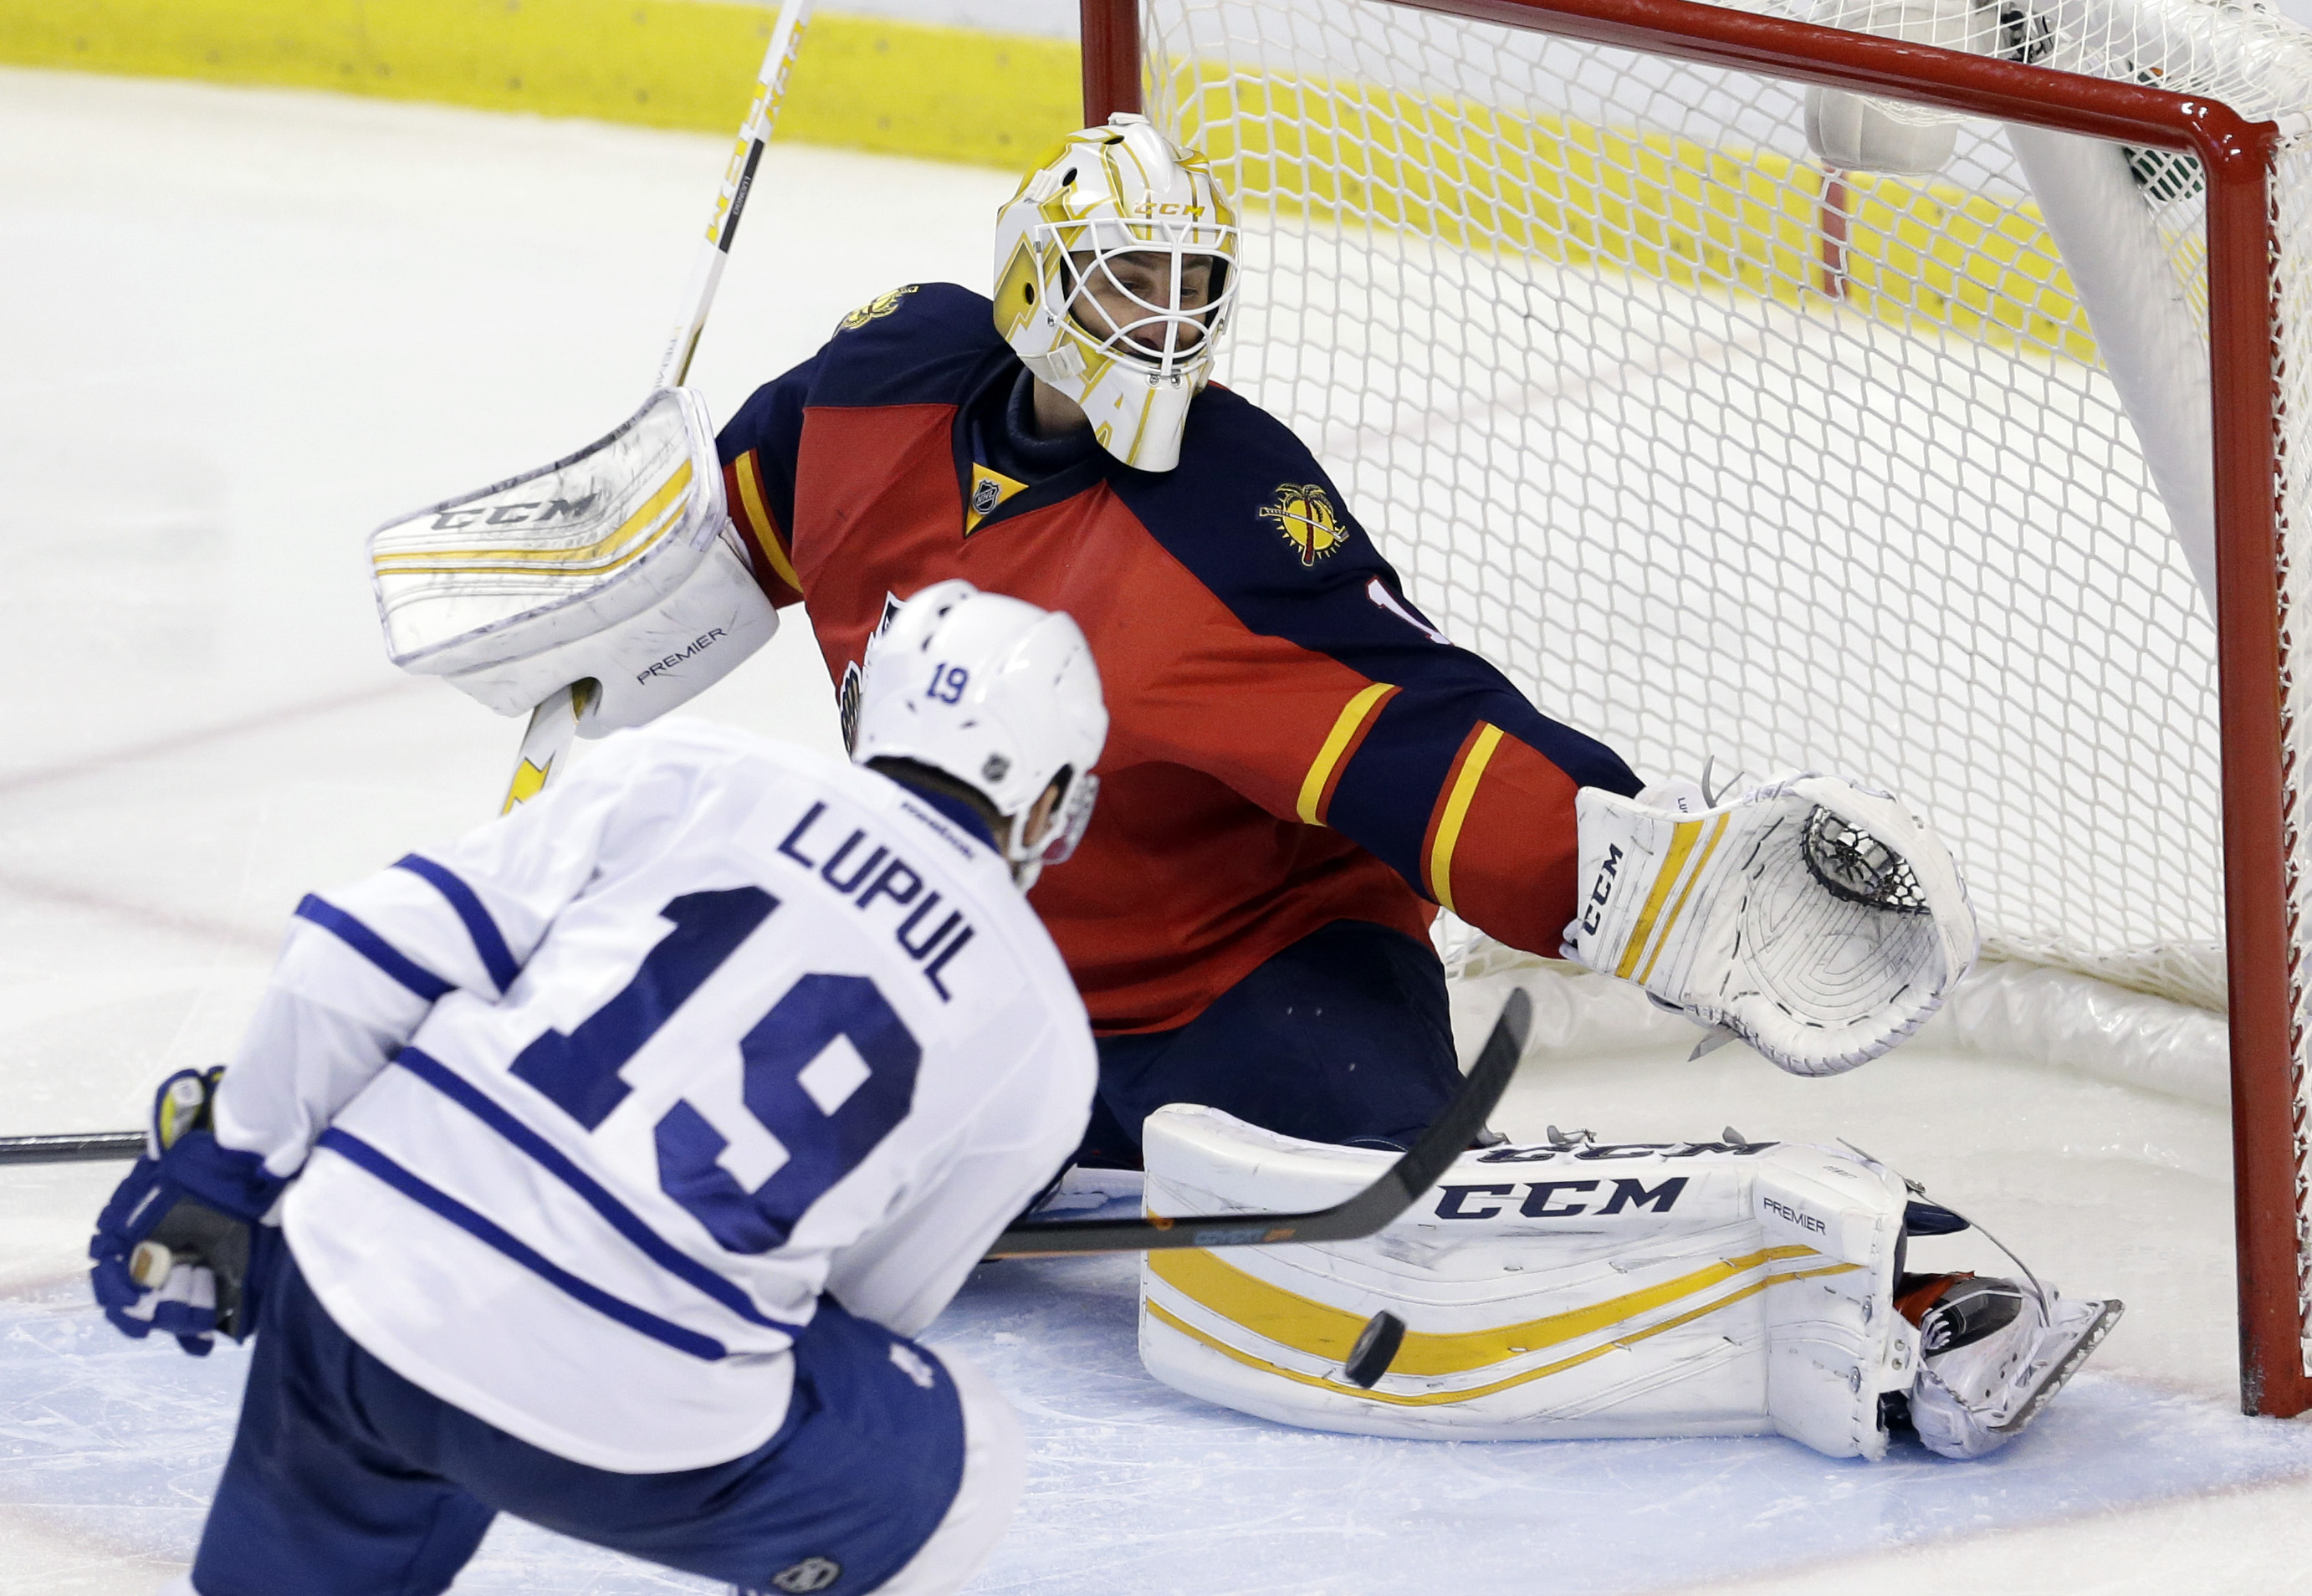 Florida Panthers goalie Roberto Luongo (1) blocks a shot by Toronto Maple Leafs right wing Joffrey Lupul (19) during the third period of an NHL hockey game, Tuesday, Jan. 26, 2016, in Sunrise, Fla. The Panthers won 5-1.  (AP Photo/Alan Diaz)